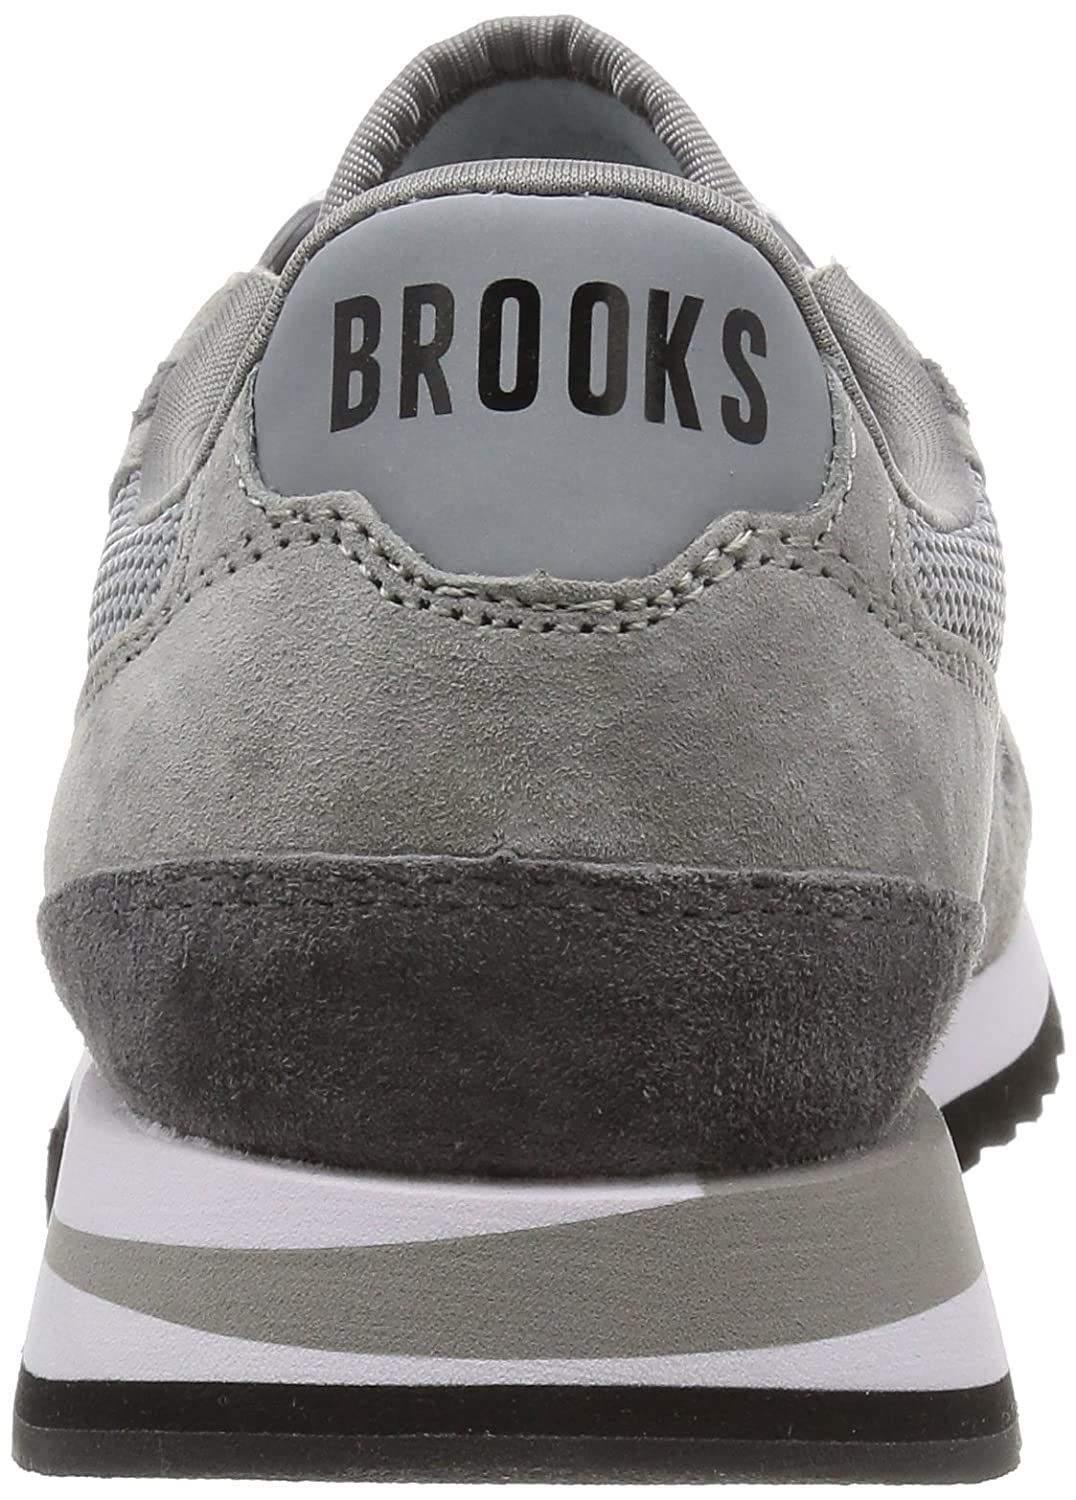 Brooks Women's Chariot B00MMPQFEQ 6 B(M) US|Athletic Grey/White